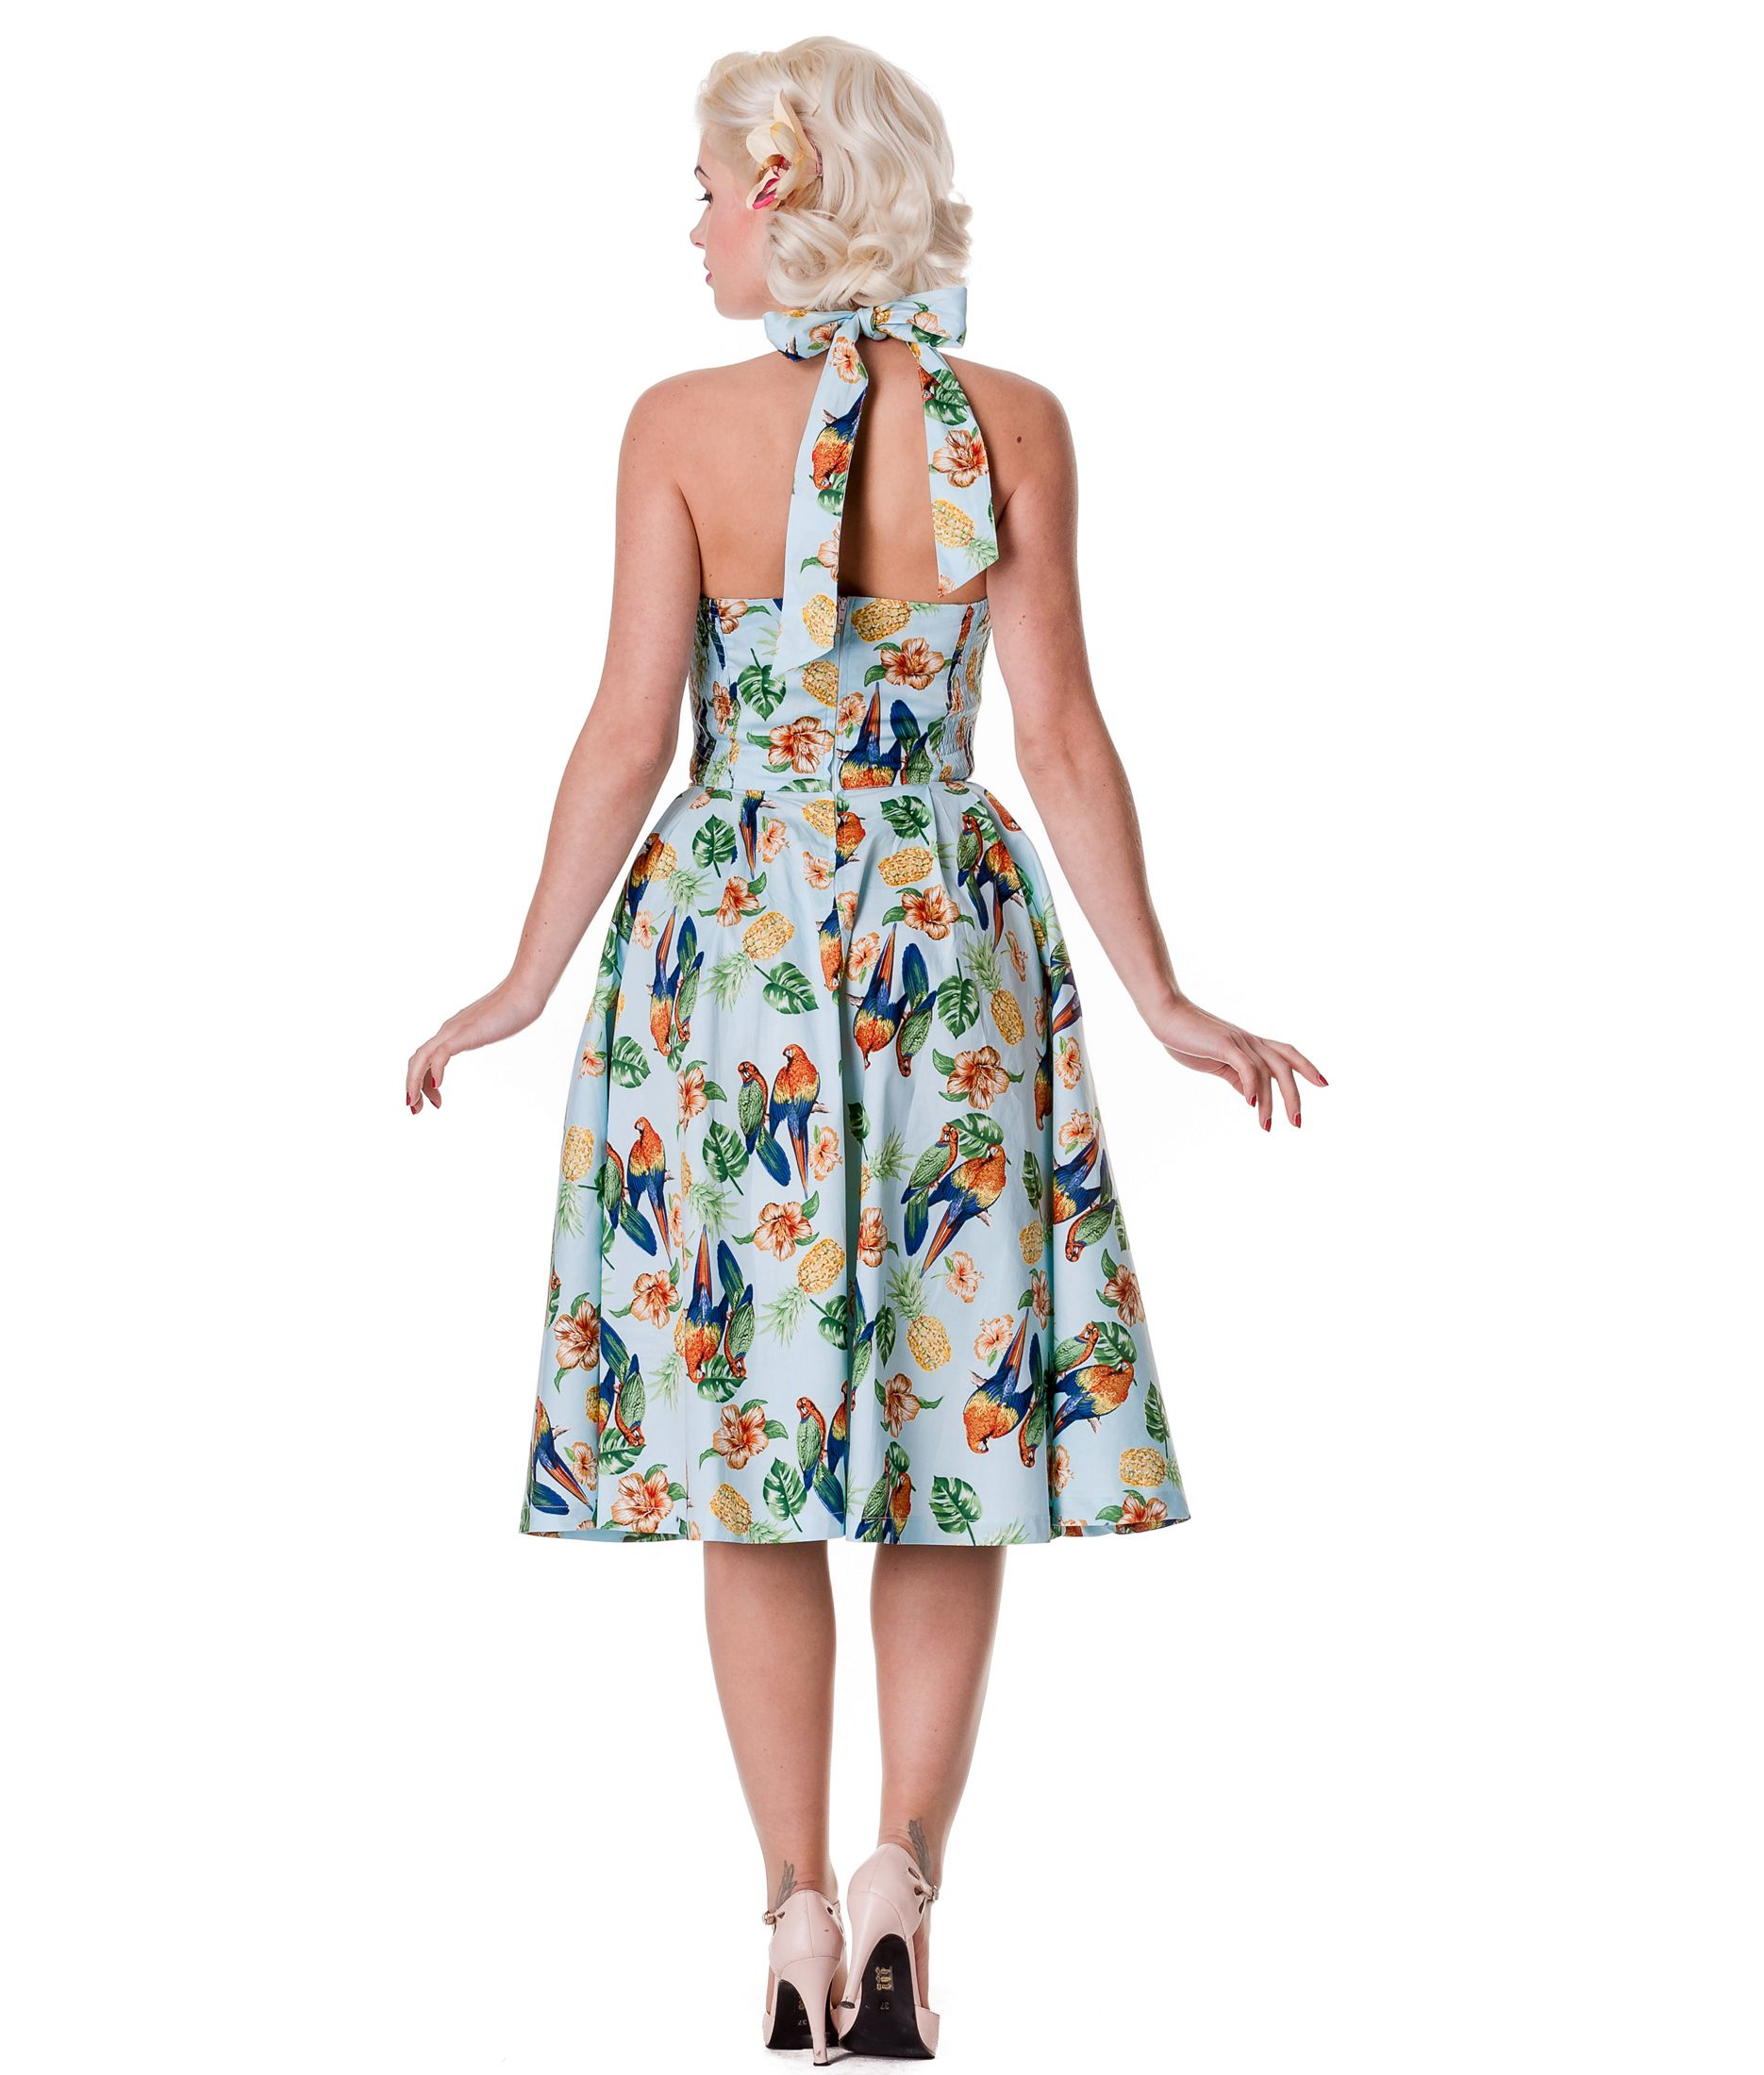 HELL BUNNY 50's vintage SASSY tropical bird rockabilly DRESS BLUE